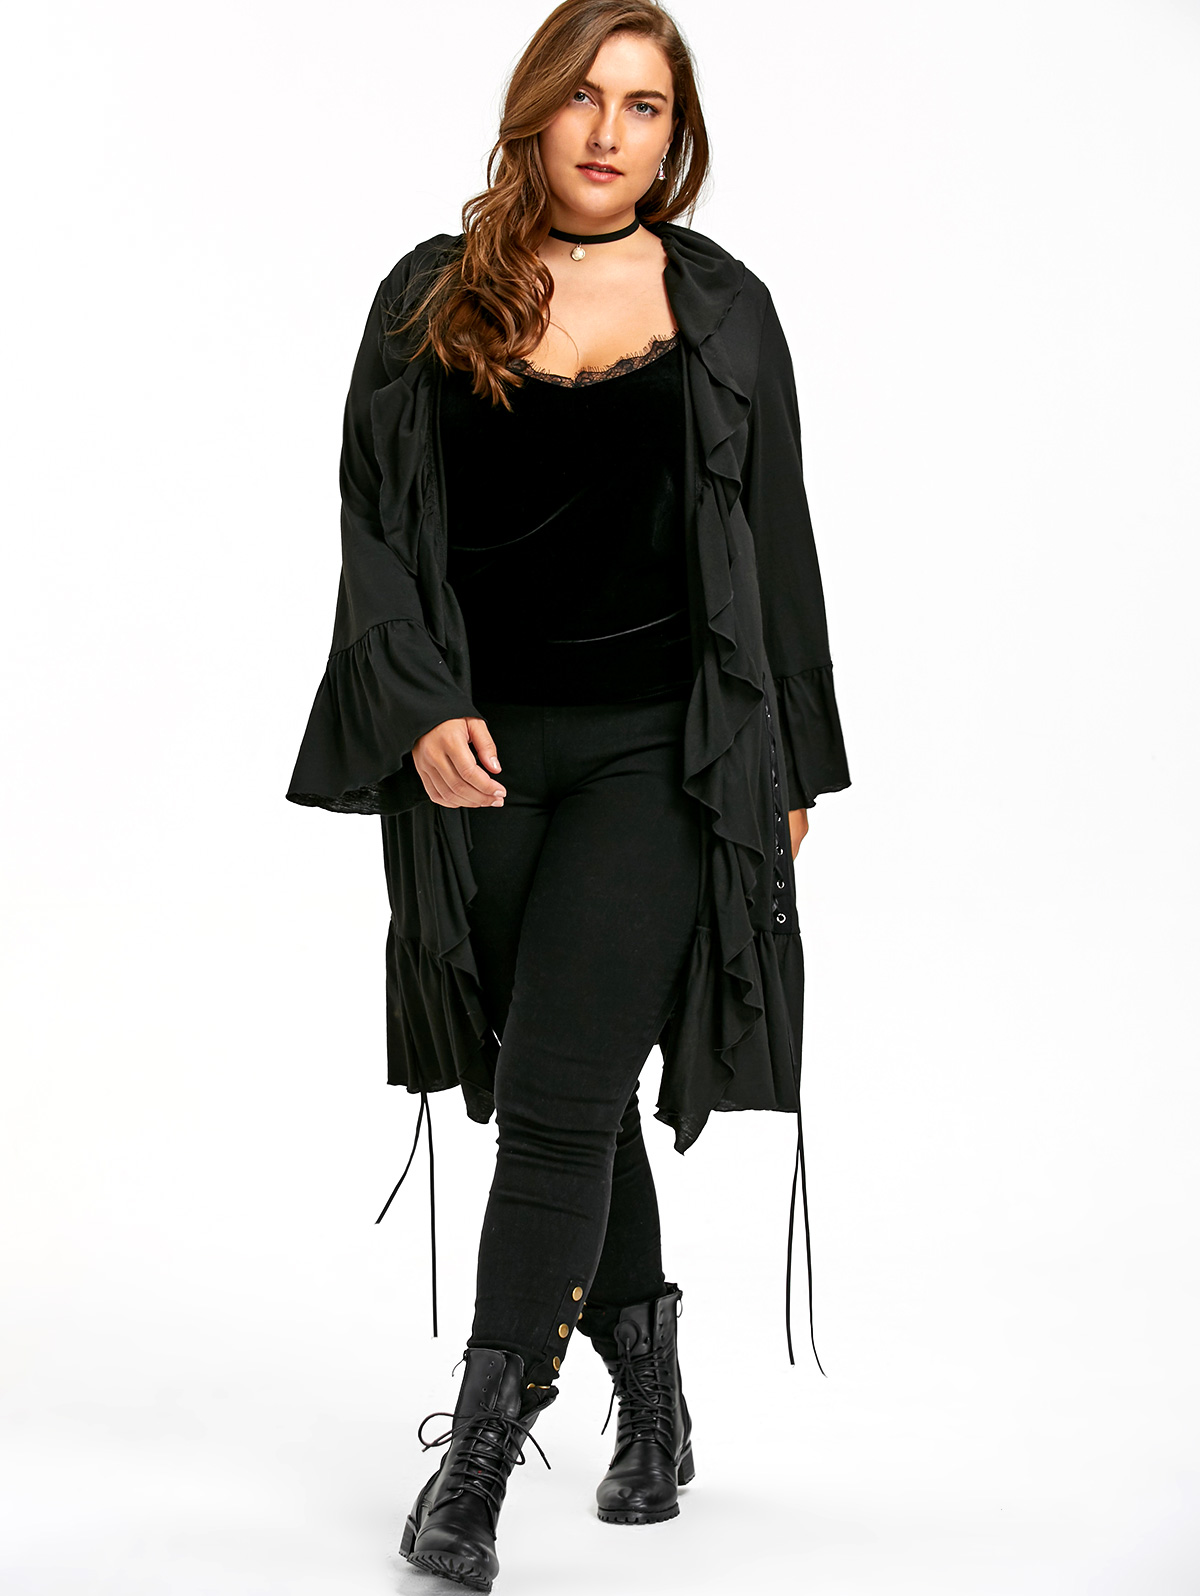 6eeecd097bf7 US $36.65 |Gamiss Women Autumn Spring Plus Size Ruffle Lace Up Gothic Coat  Flare Sleeve Oversized 5XL Solid Color Large Women Coat Outwear-in Trench  ...